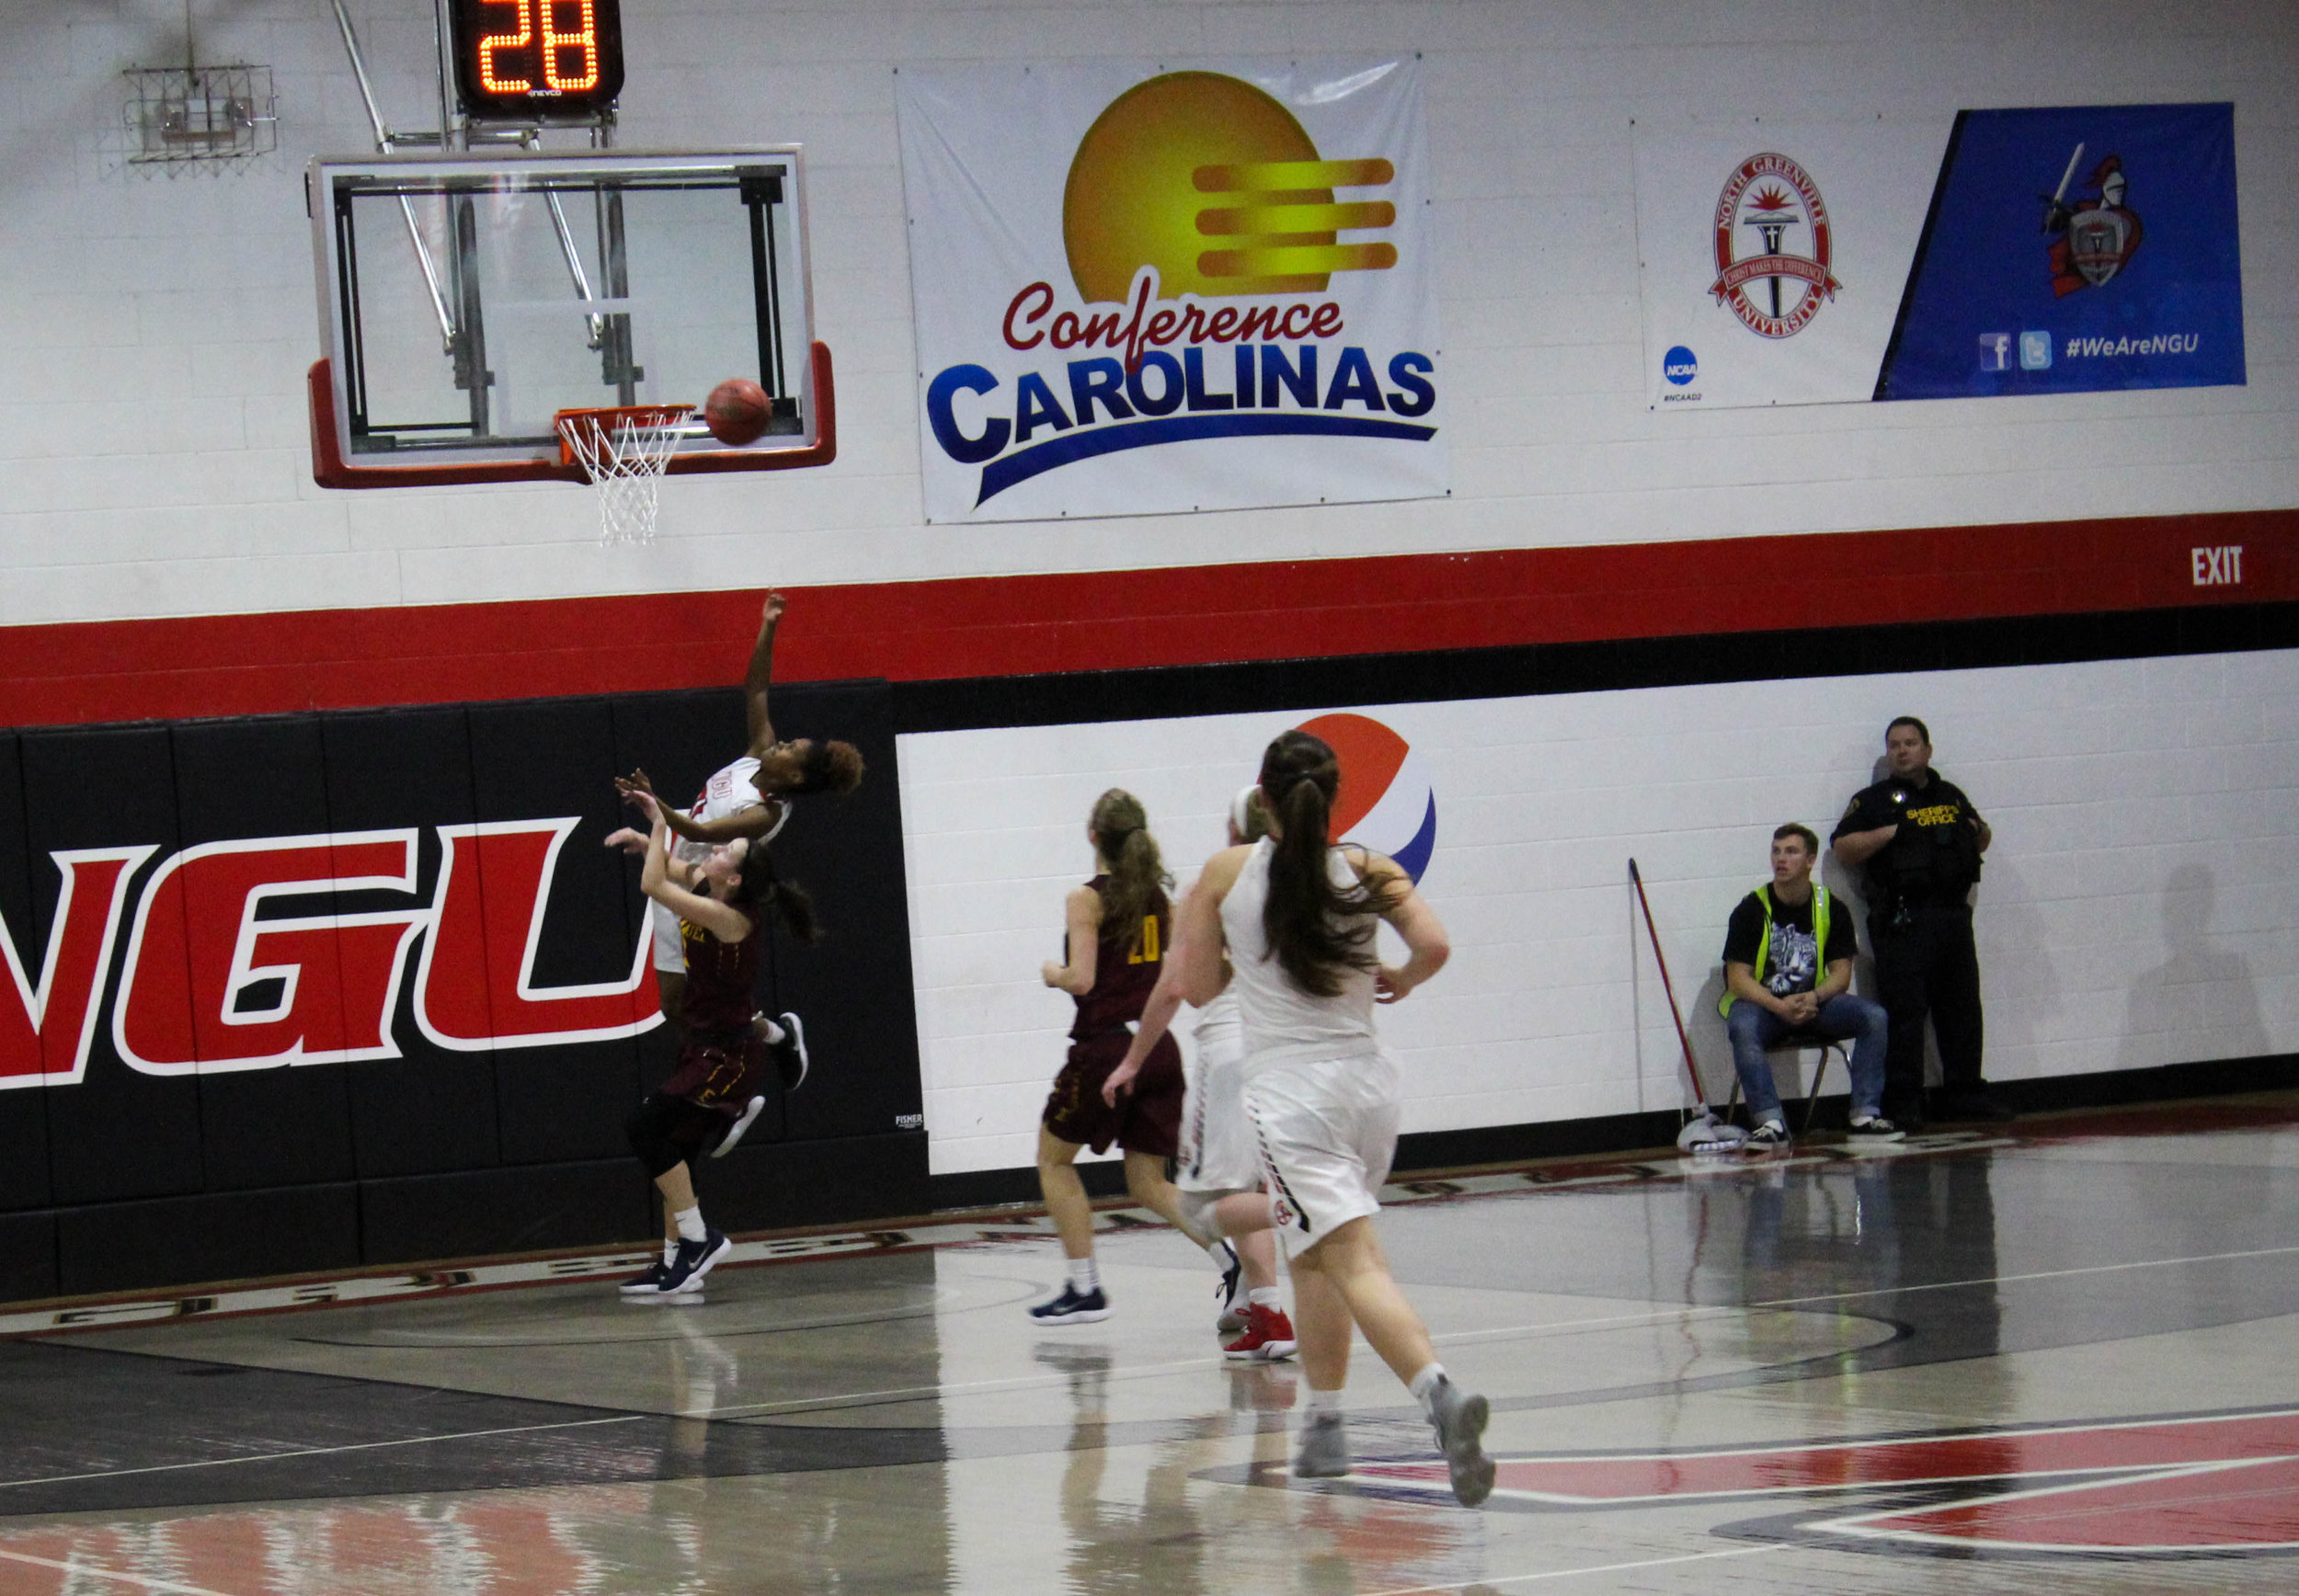 After getting a fast break down the court, Savannah Hughes (21) goes up and makes a layup.